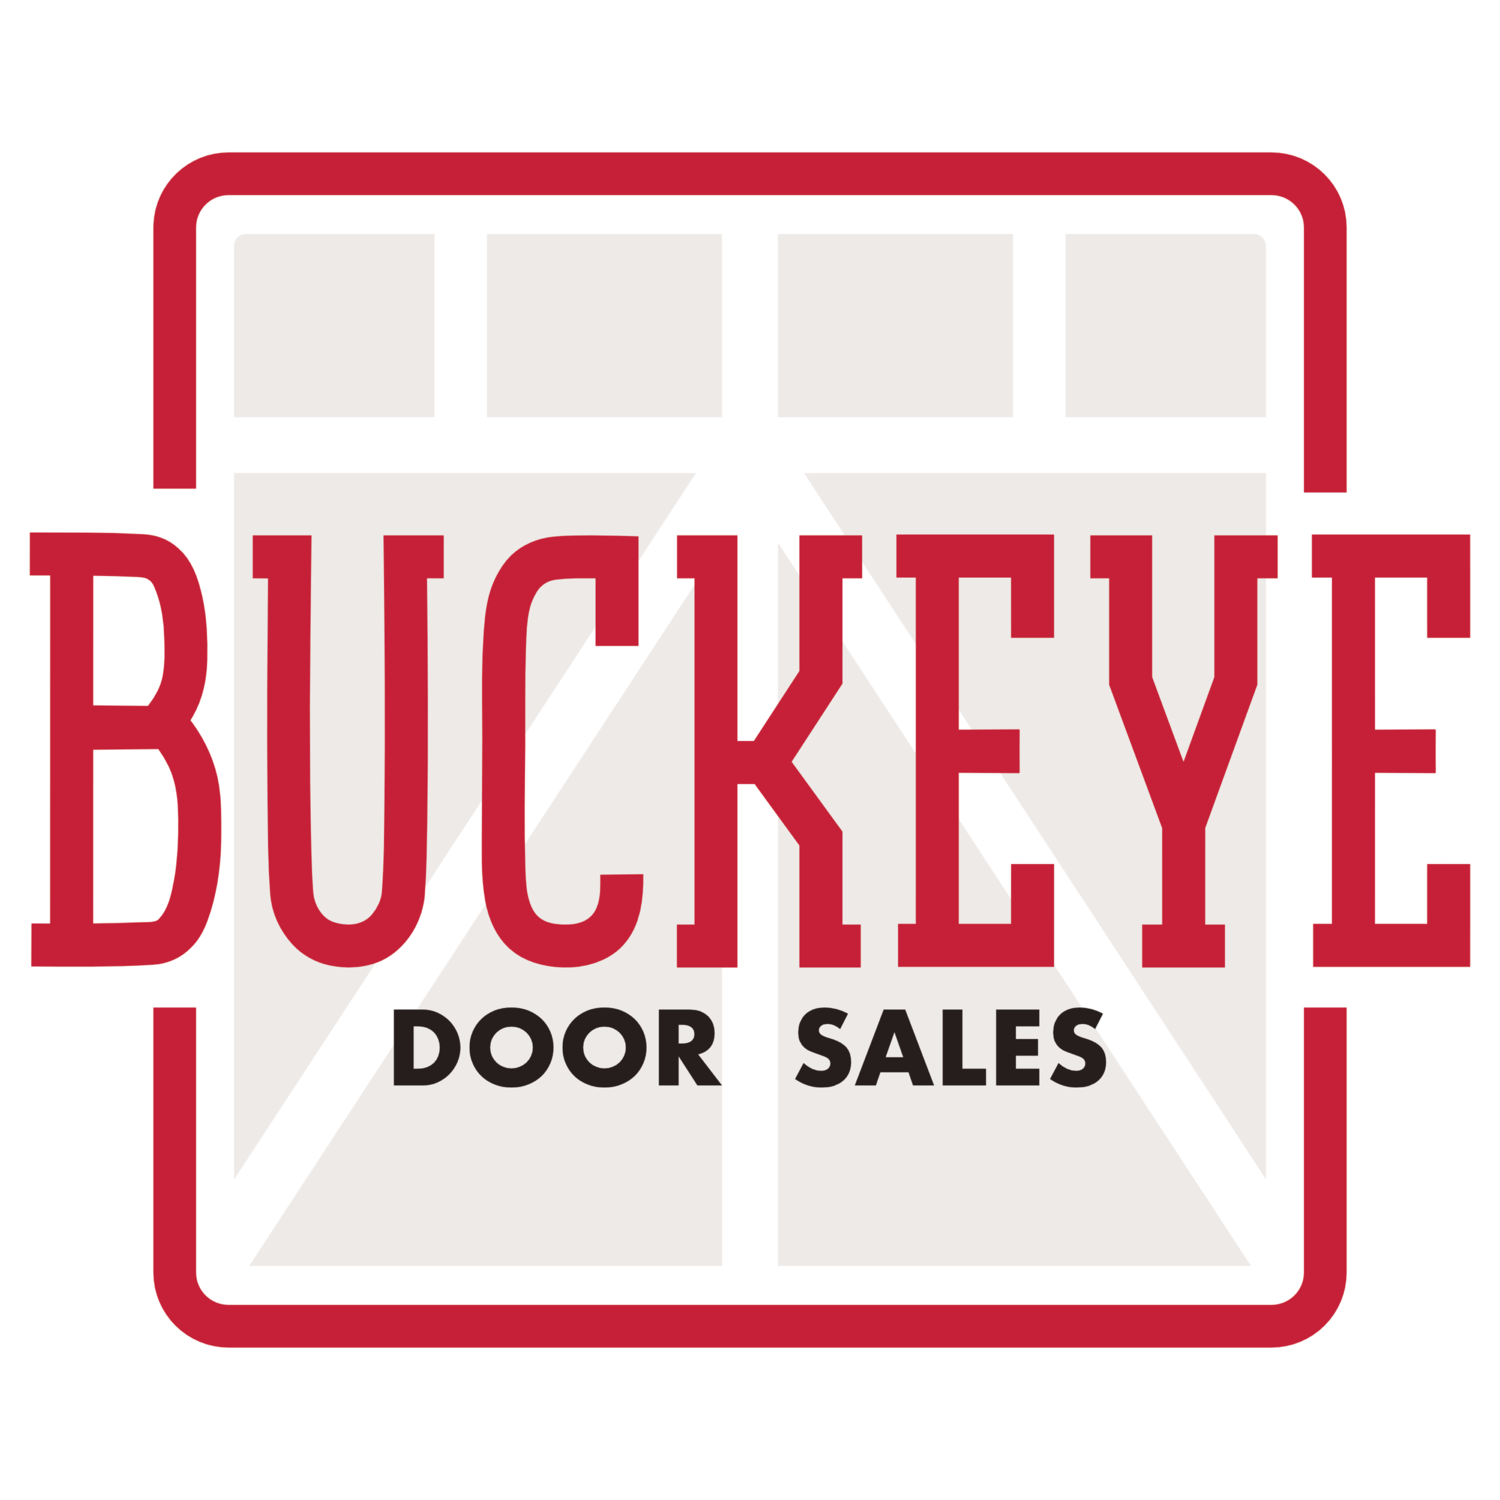 Garage Door Sales Garage Door Repair In Dayton Oh Buckeye Door Sales